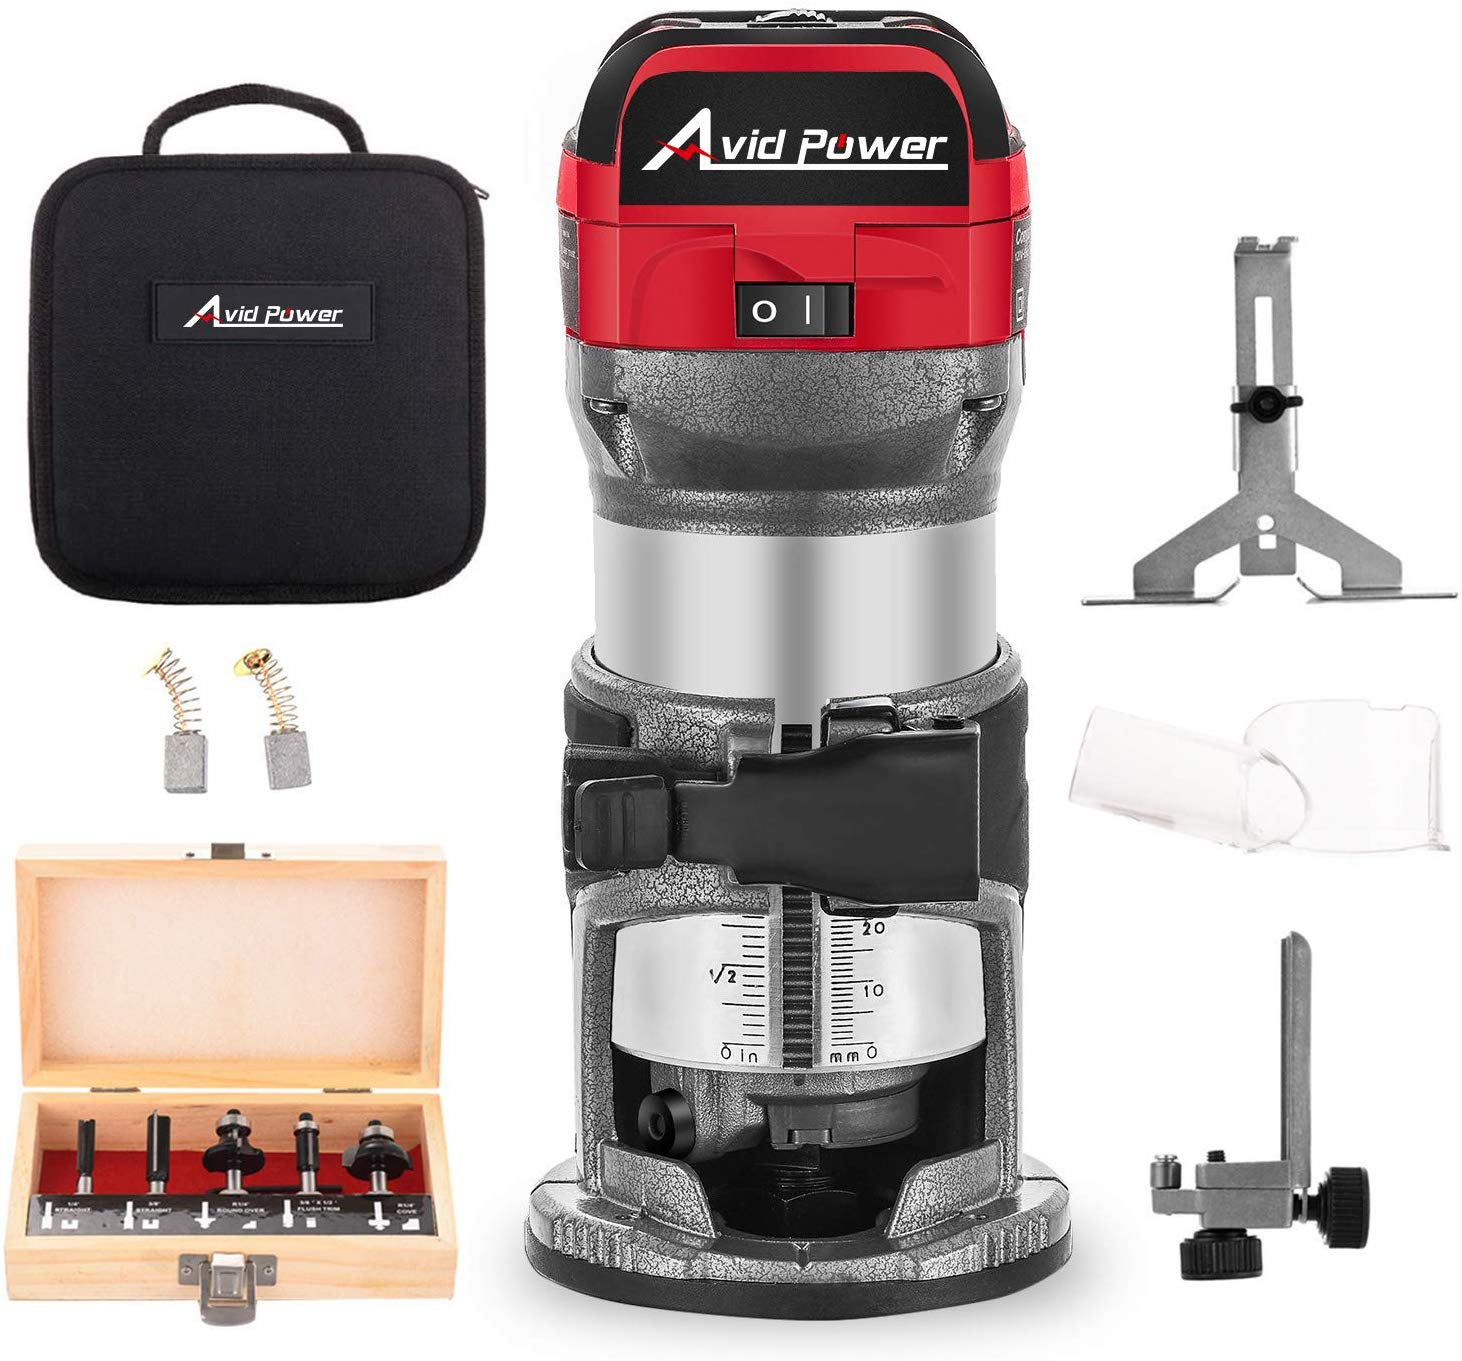 Masterworks MW104 Compact Router